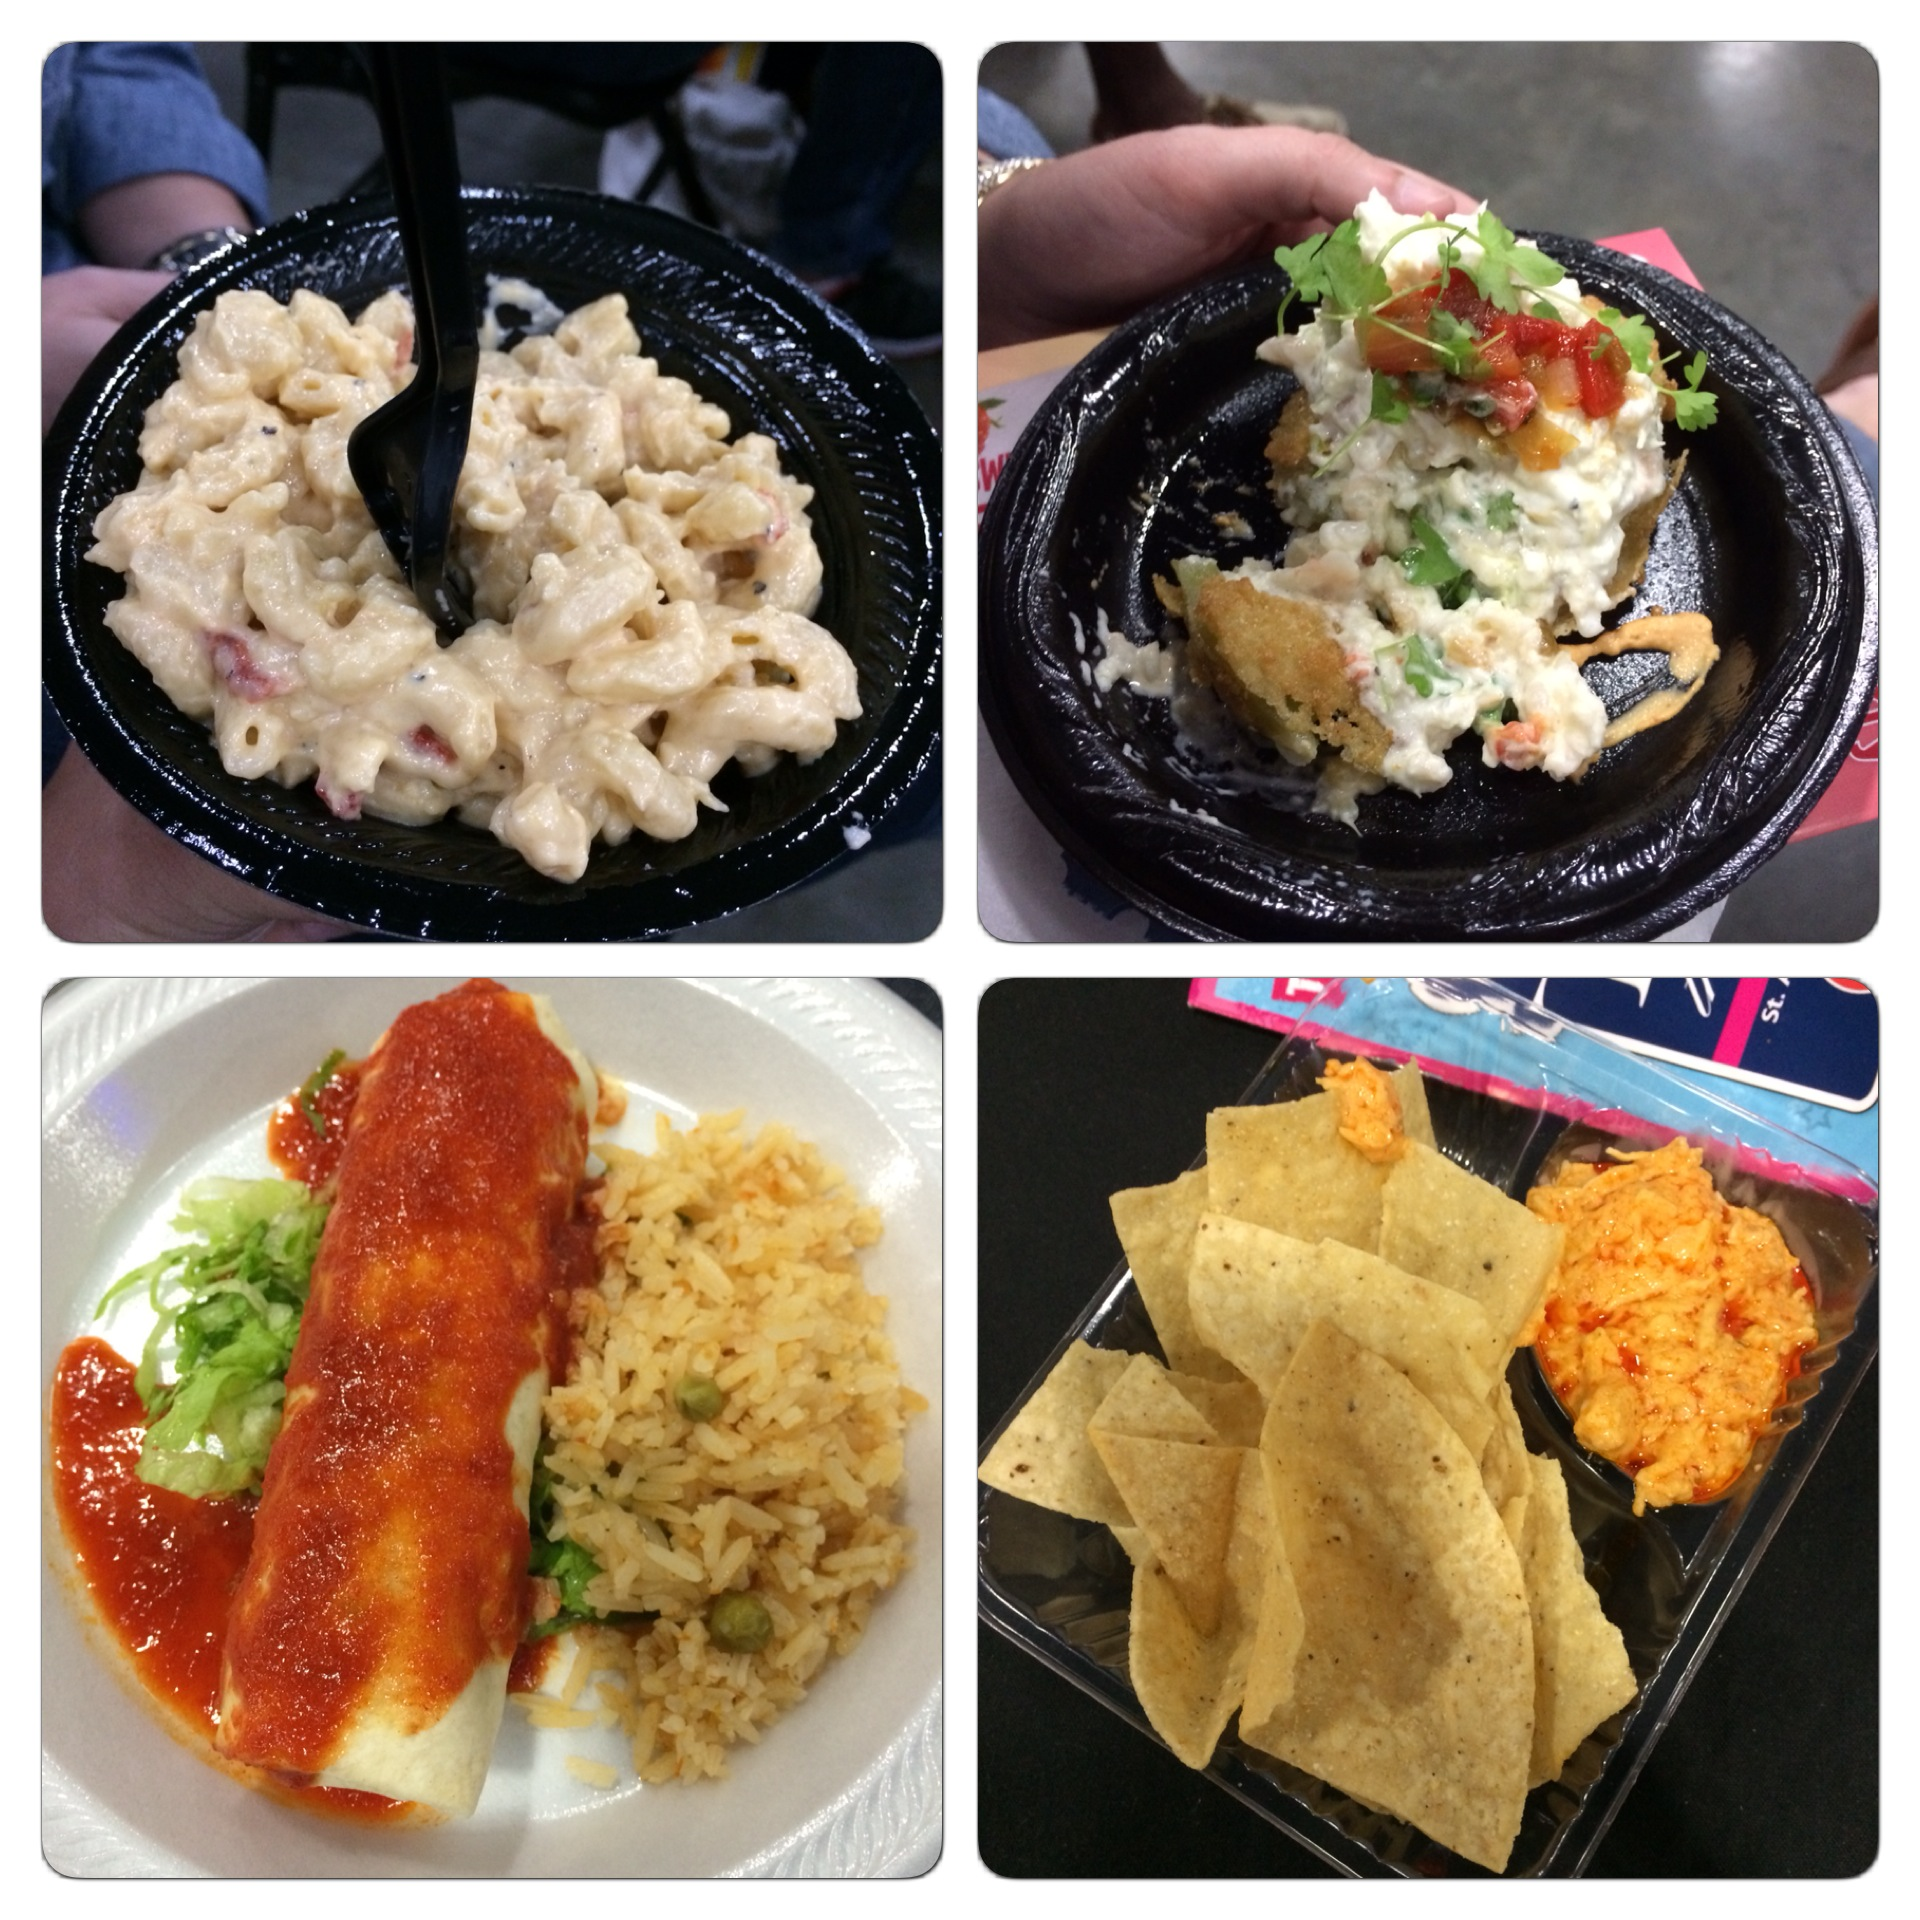 Here are some of the dishes we had. The upper left corner is the chicken macaroni and cheese. The top  right hand corner is a fried green tomato. The bottom right hand corner is buffalo chicken dip and the bottom left hand corner is a burrito with rice.